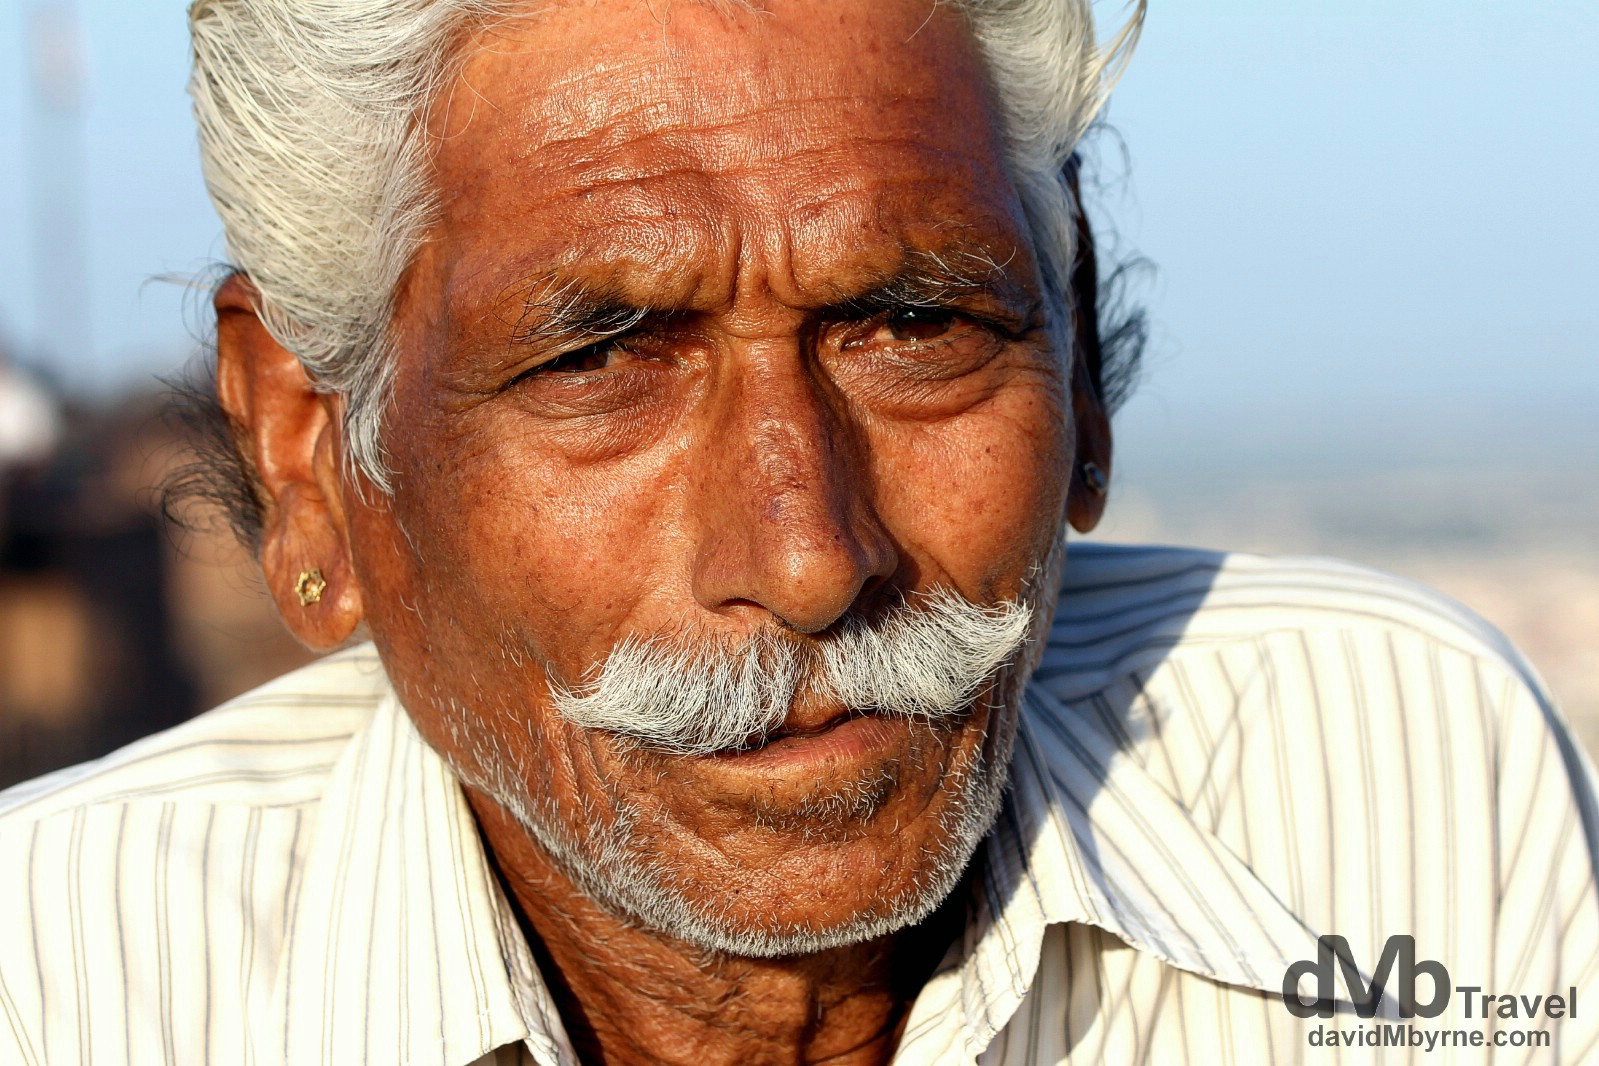 Anop, a friendly local, on the walls of Mehrangarh Fort, Jodhpur, Rajasthan, India. October 6th 2012.